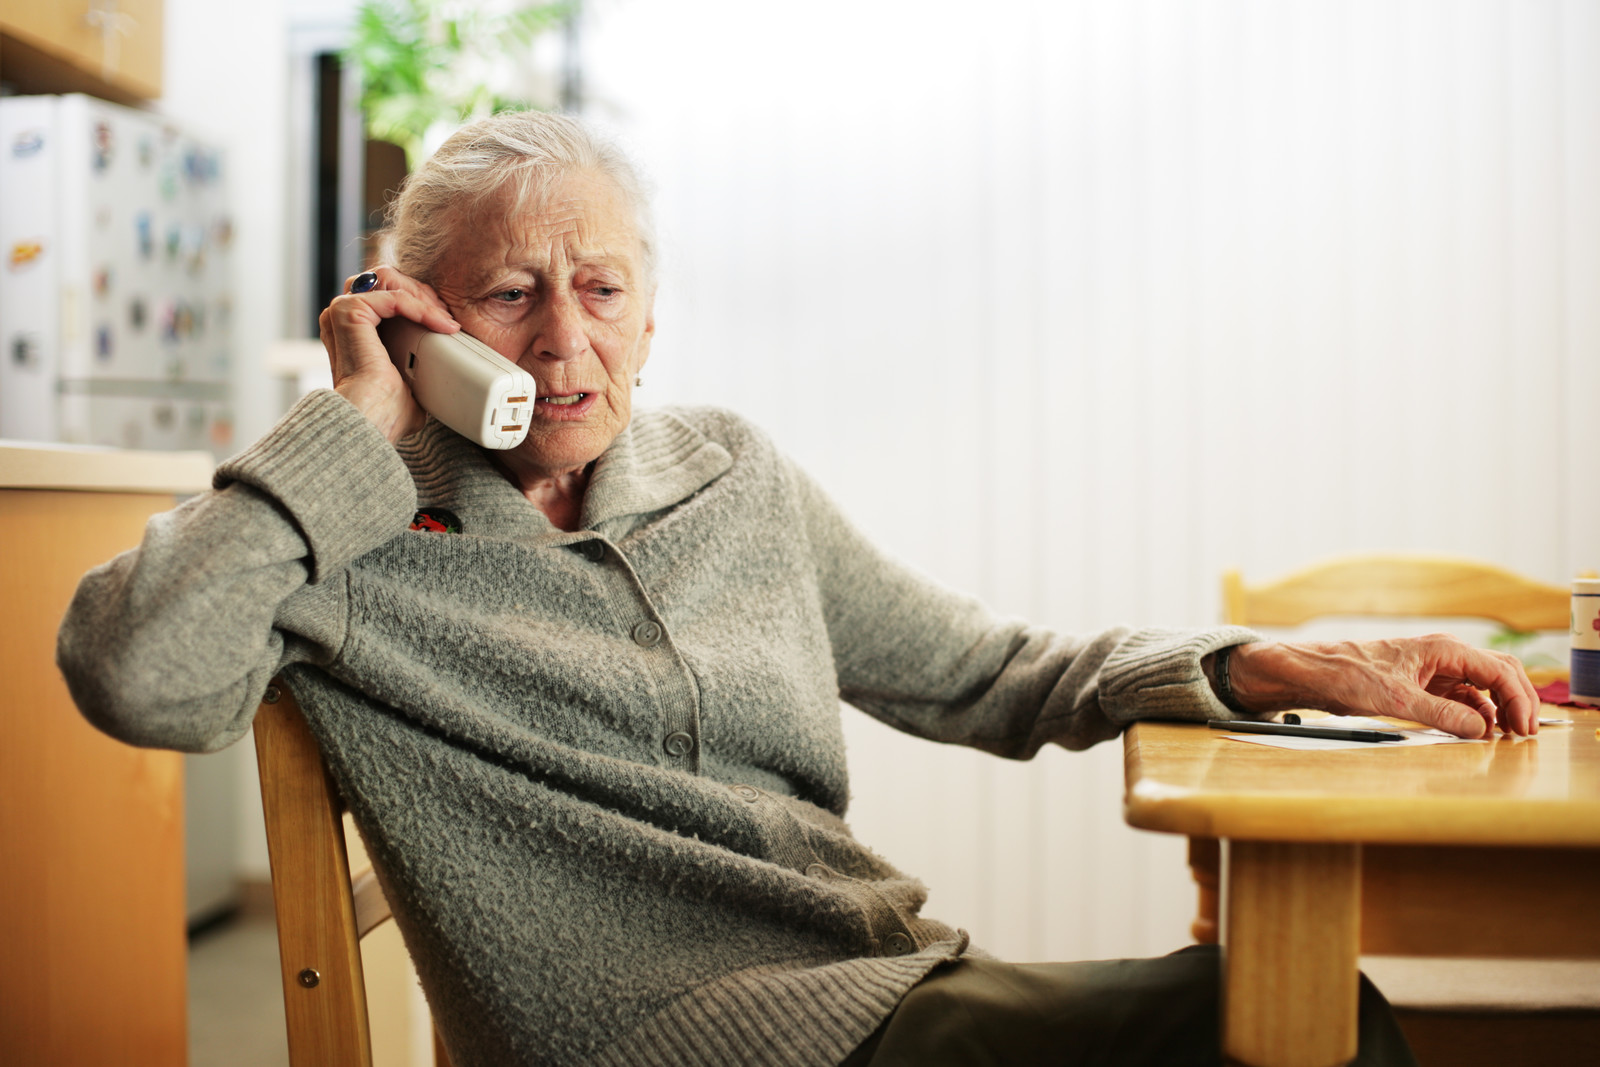 Senior woman talking on the phone while sitting at a table with a concerned look on her face